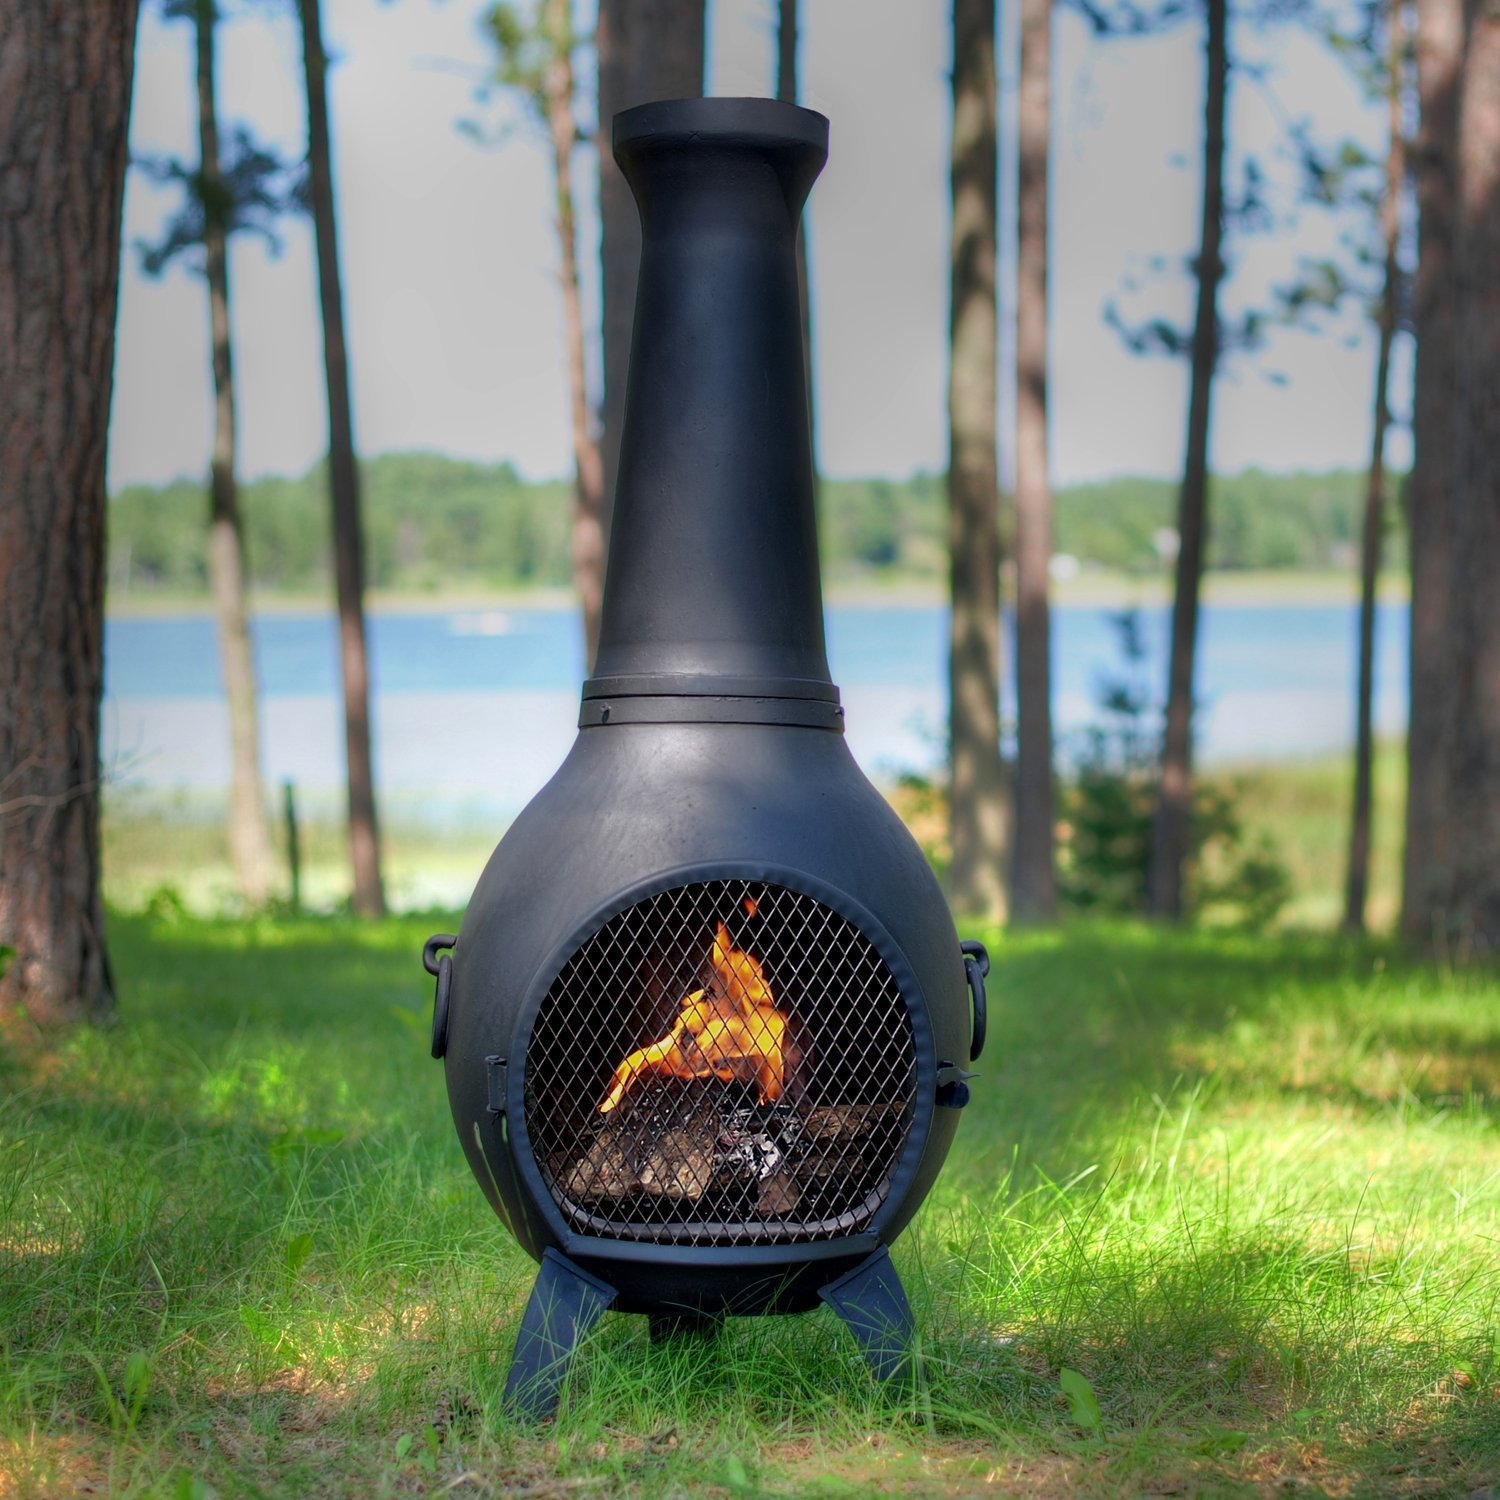 Lovely Black Chiminea Outdoor Fireplace For Outdoor Furniture Ideas